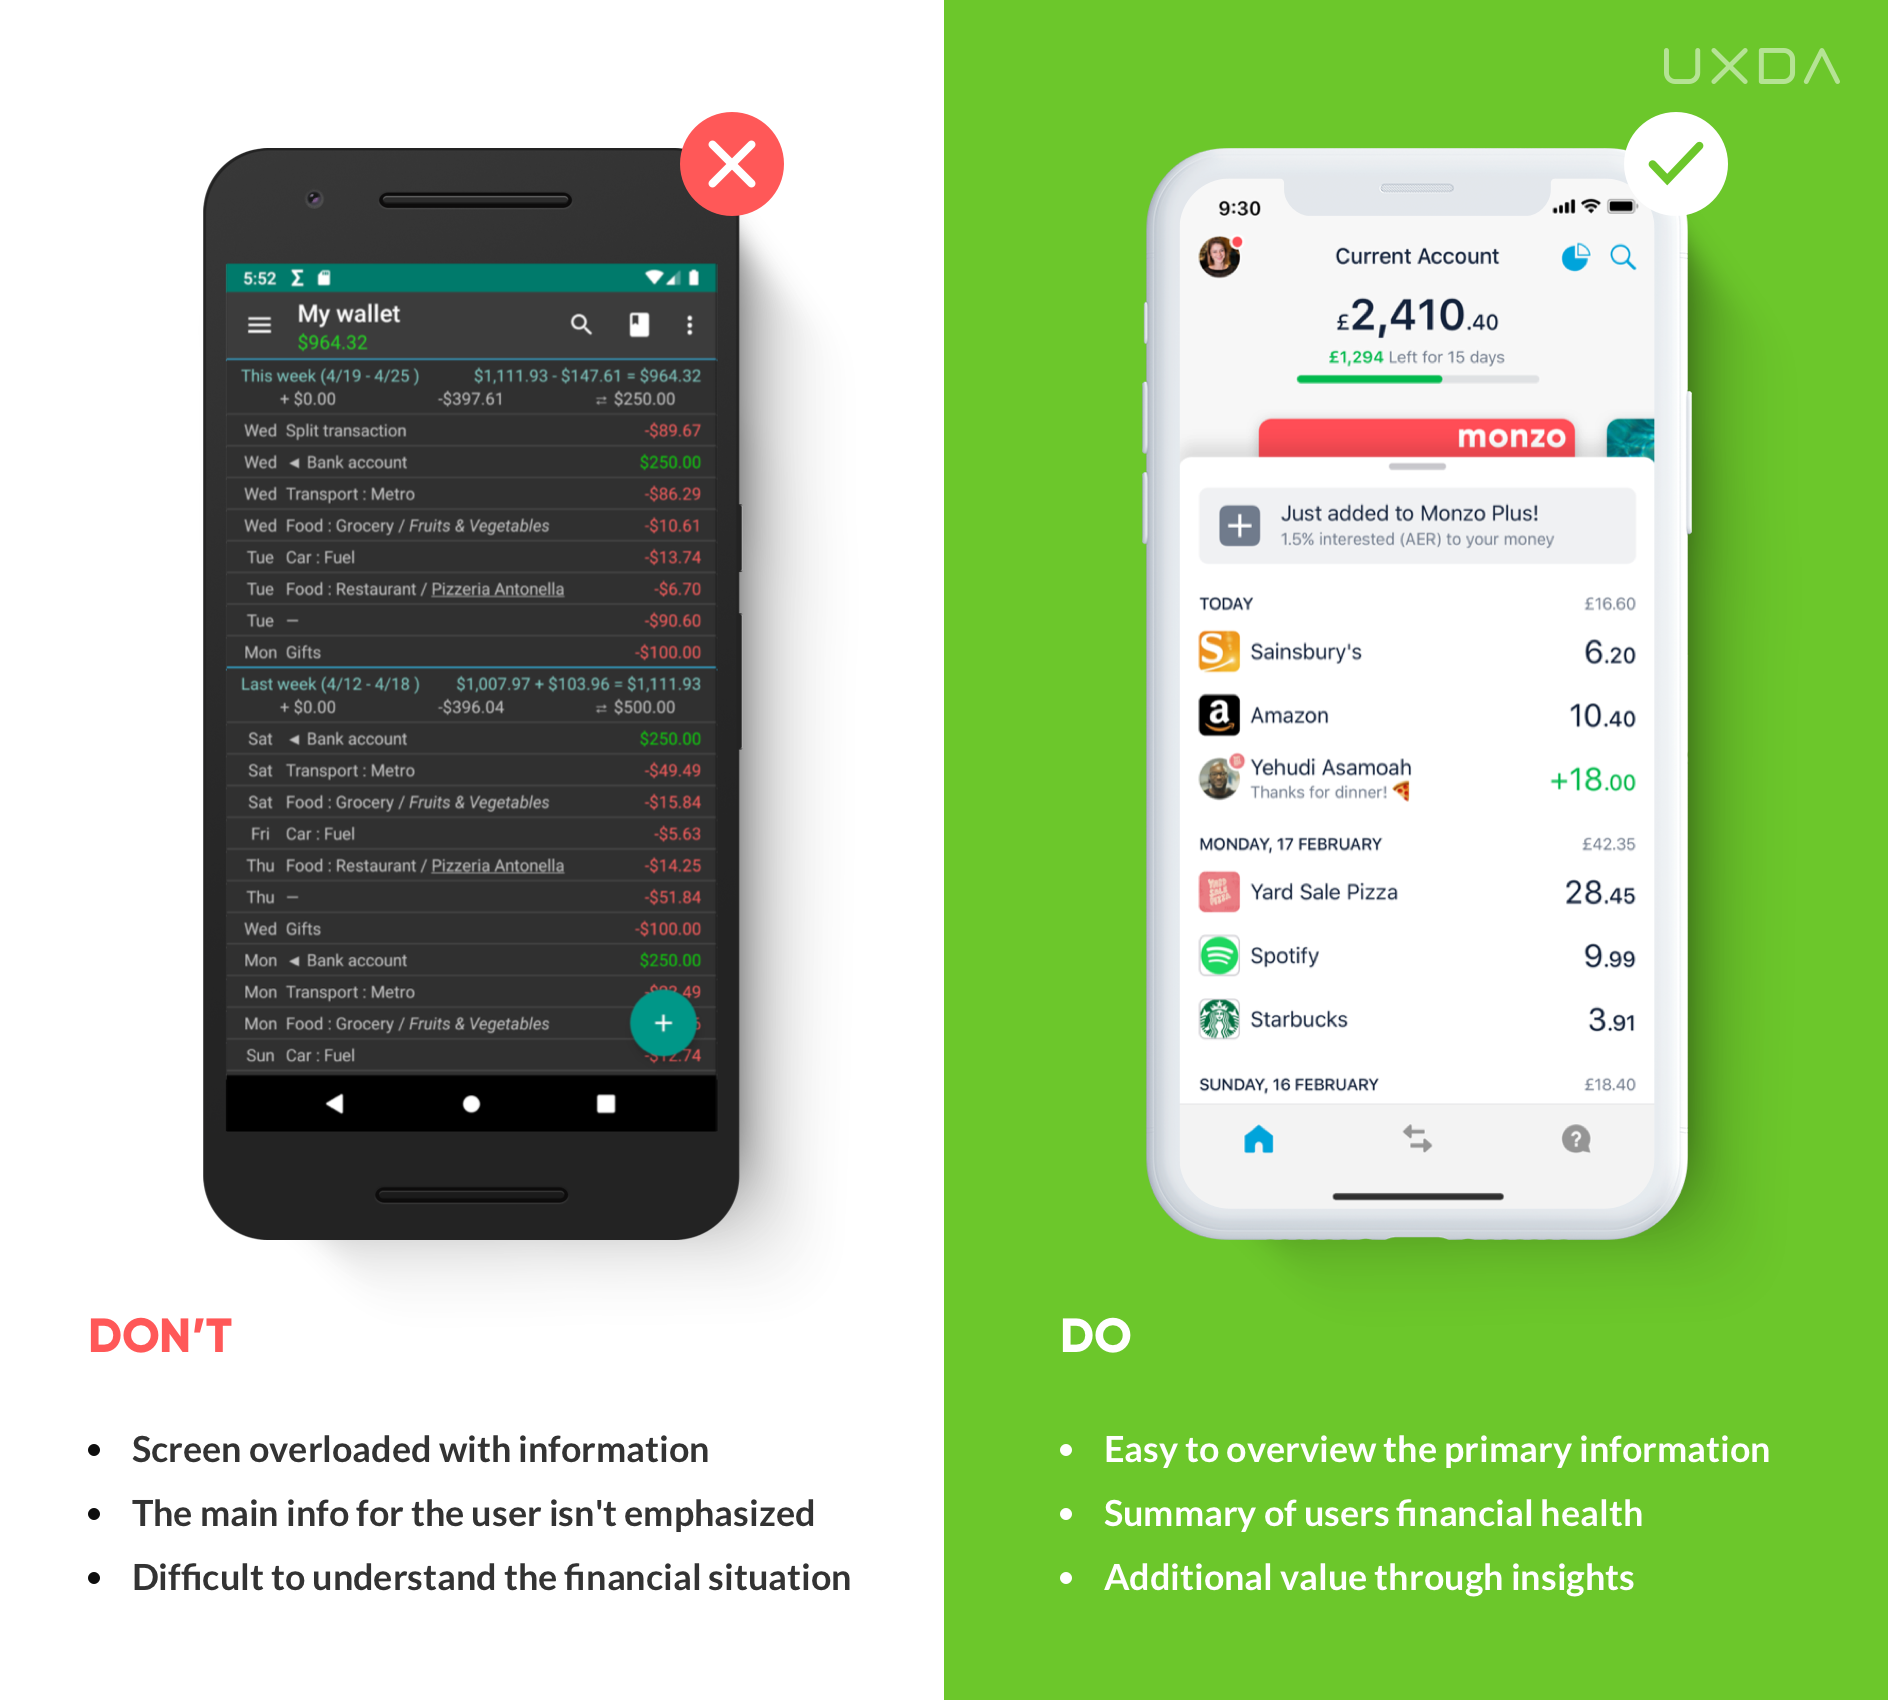 financial-ux-design-for-financial-app-m-2-overloaded-dashboard.png